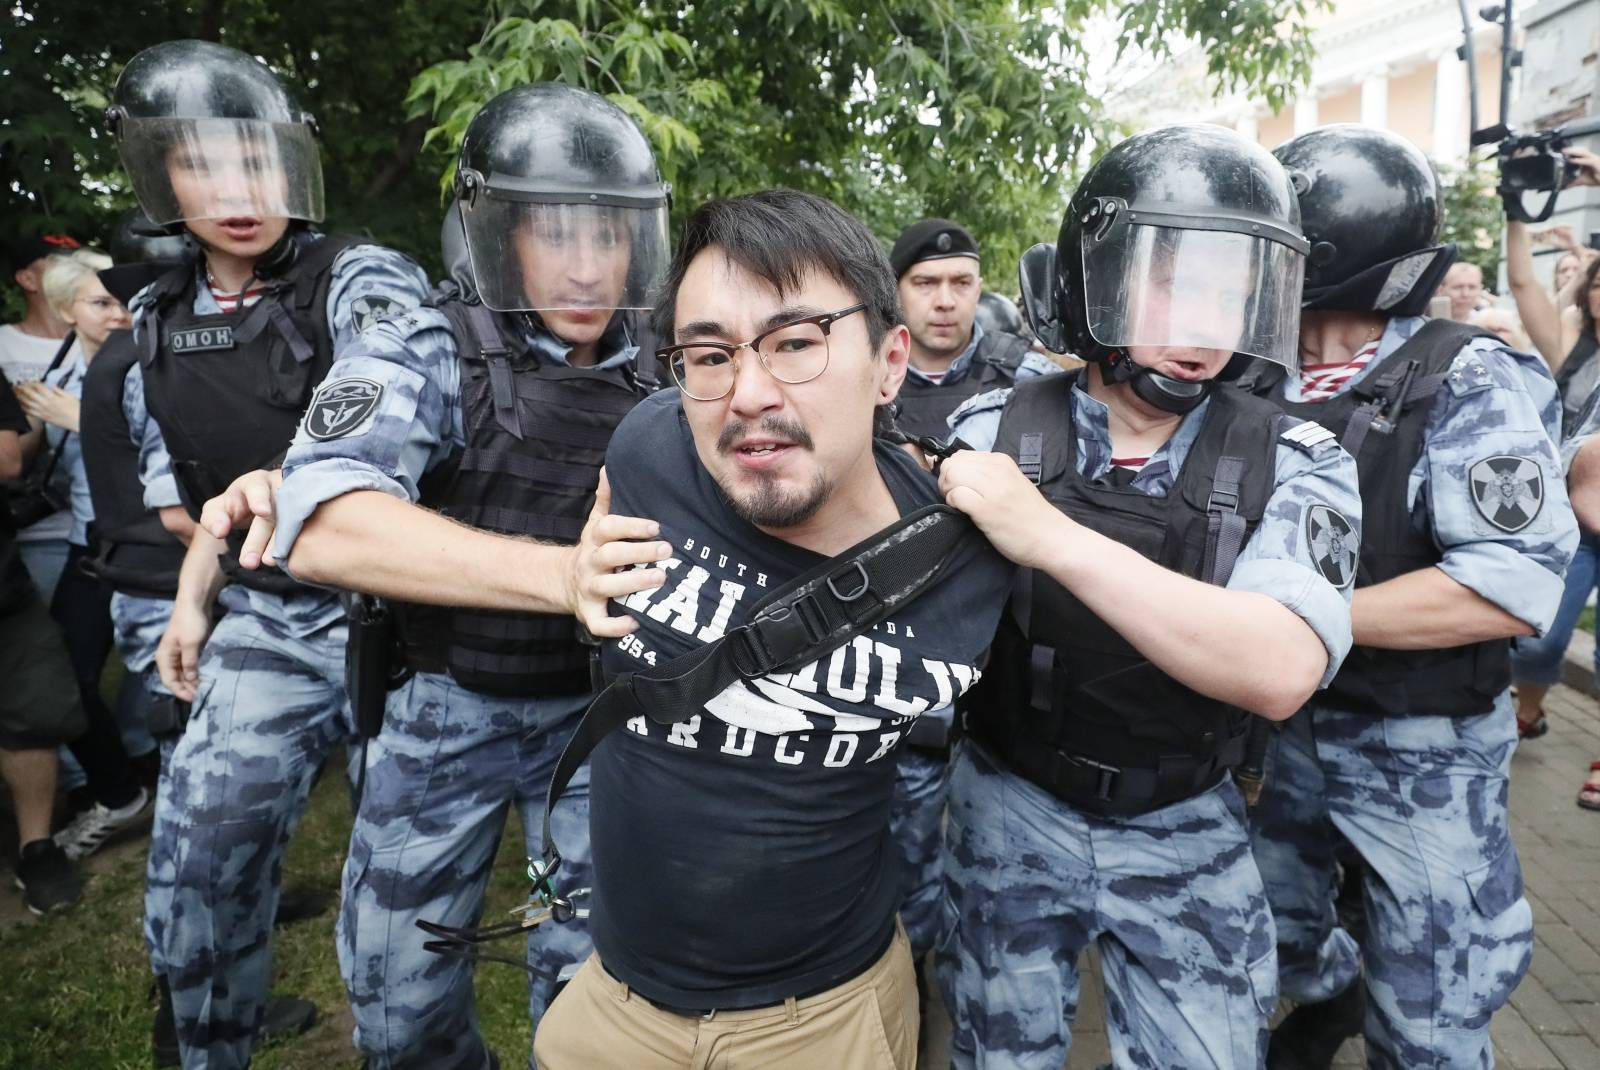 Law enforcement officers detain a participant of a rally in support of Russian investigative journalist Ivan Golunov in Moscow